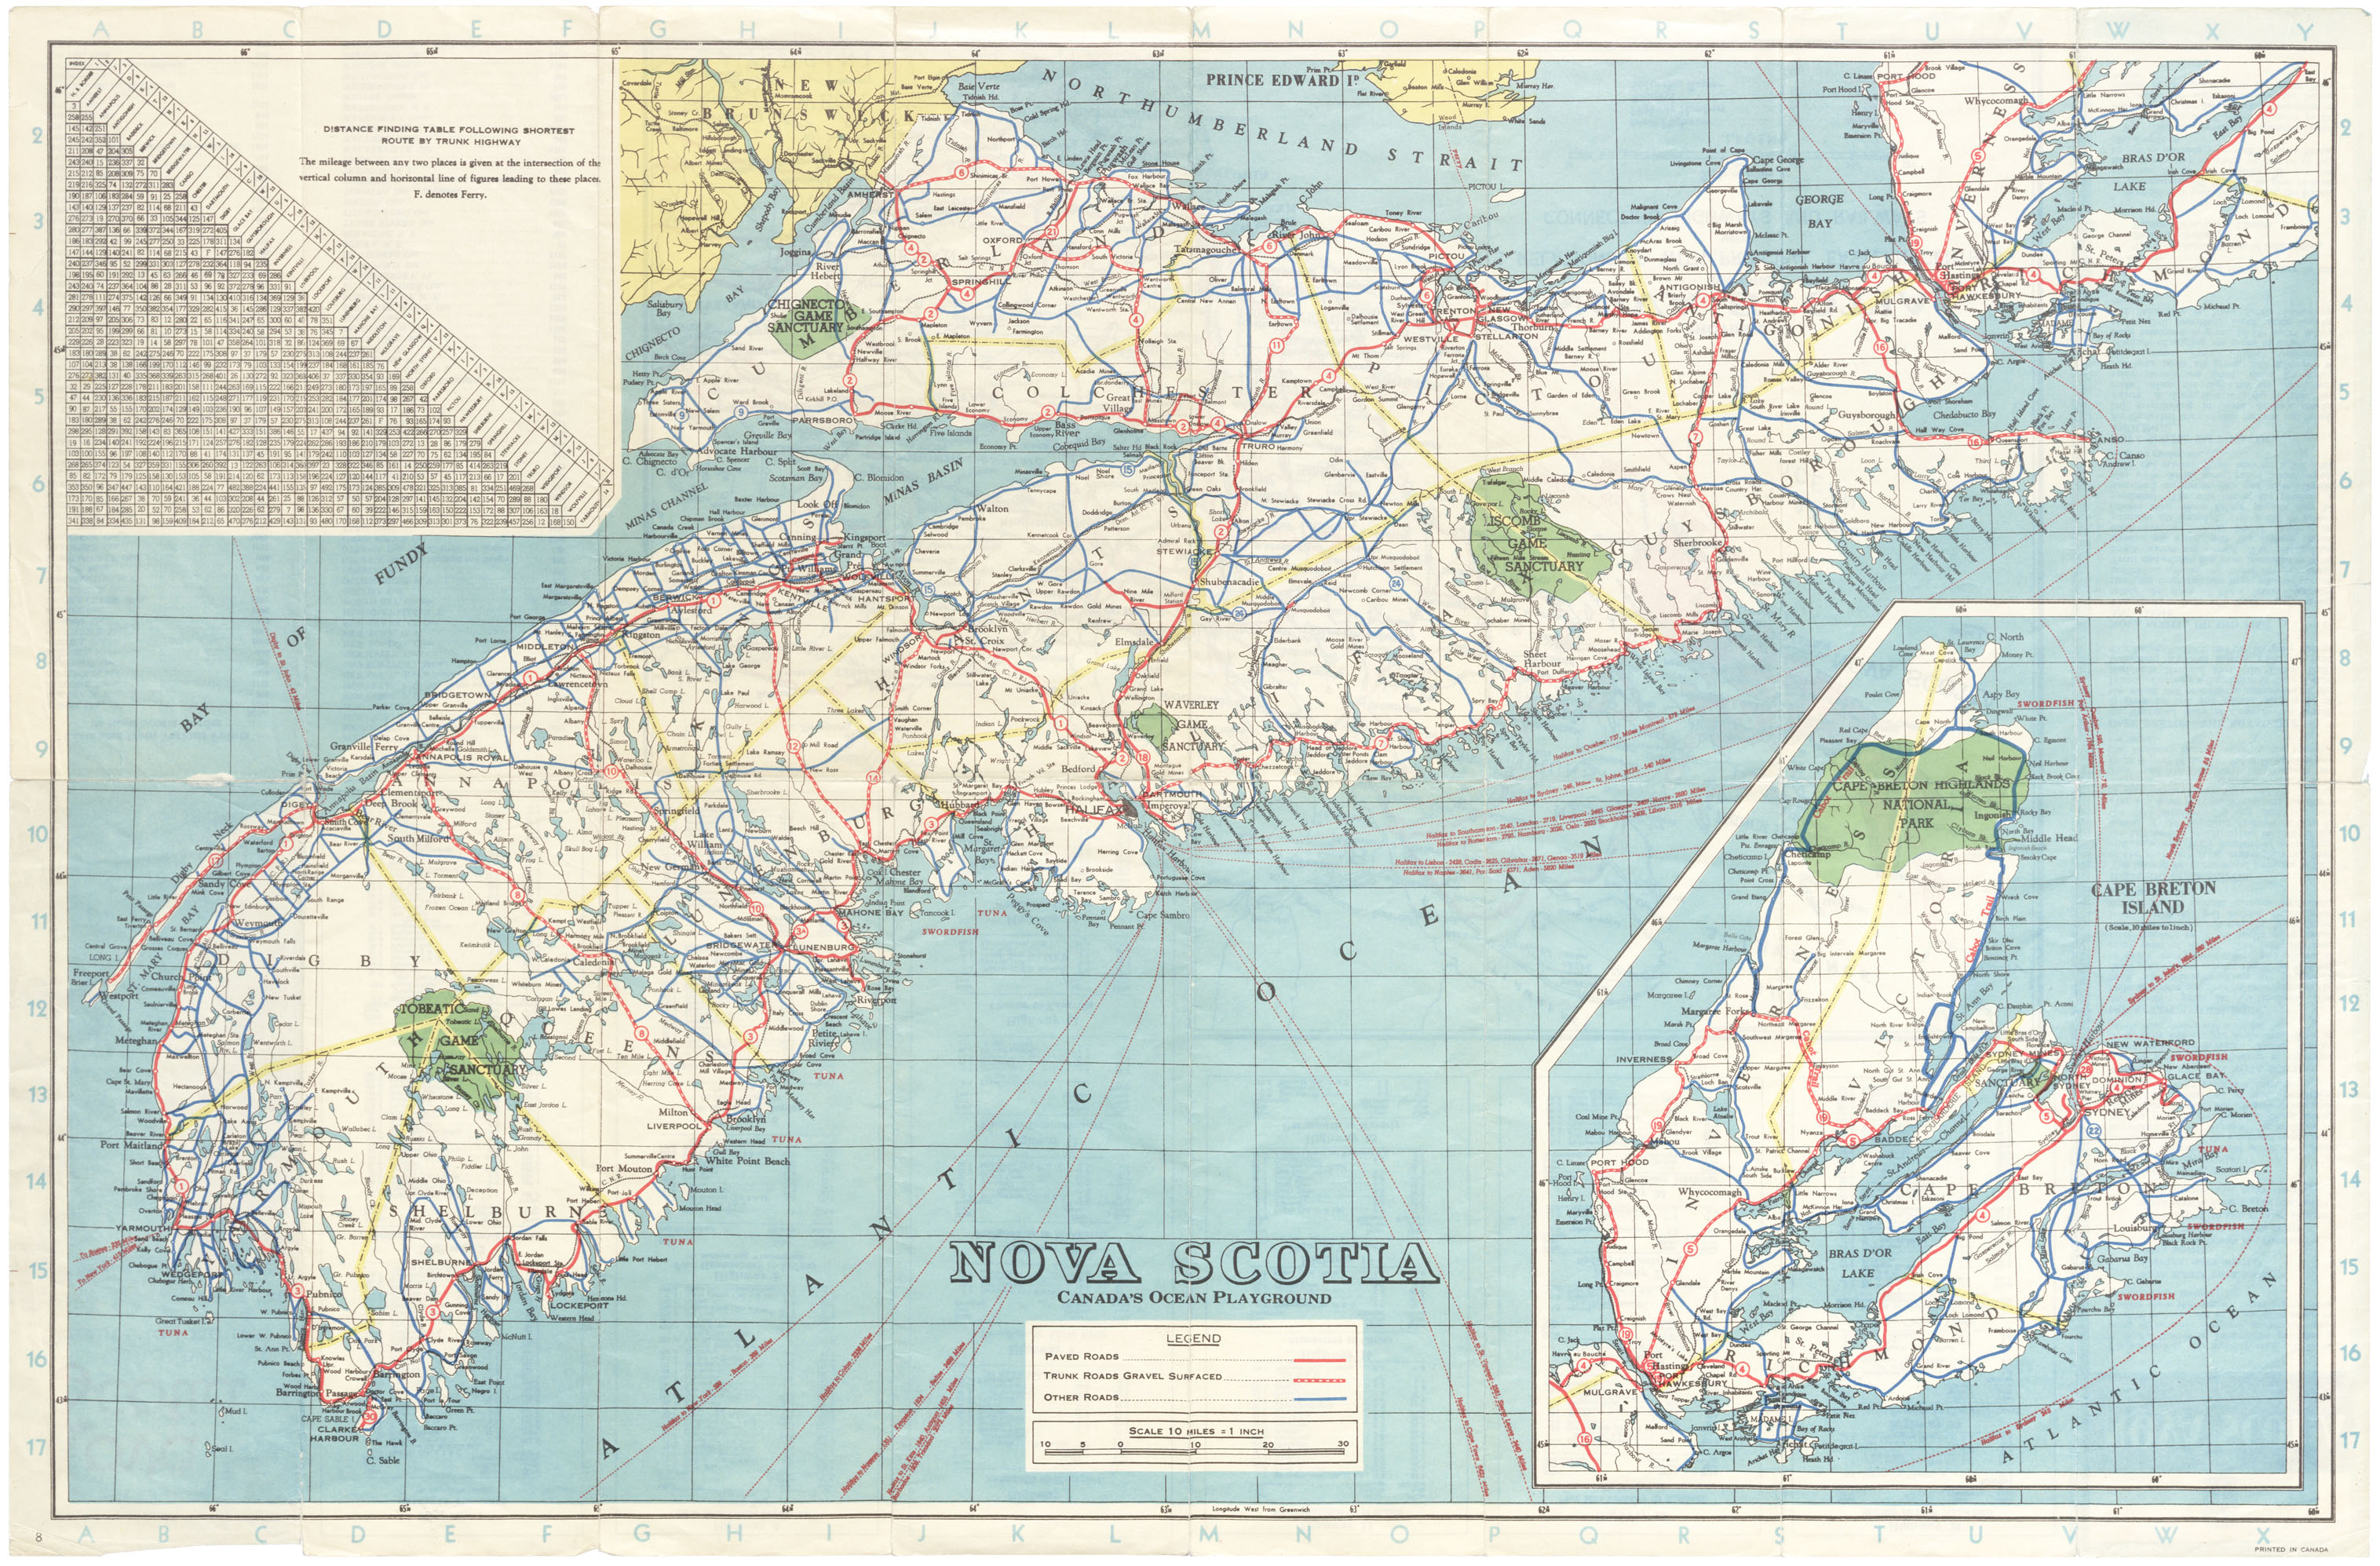 Official Highway Map, Province of Nova Scotia, Canada's Ocean Playground